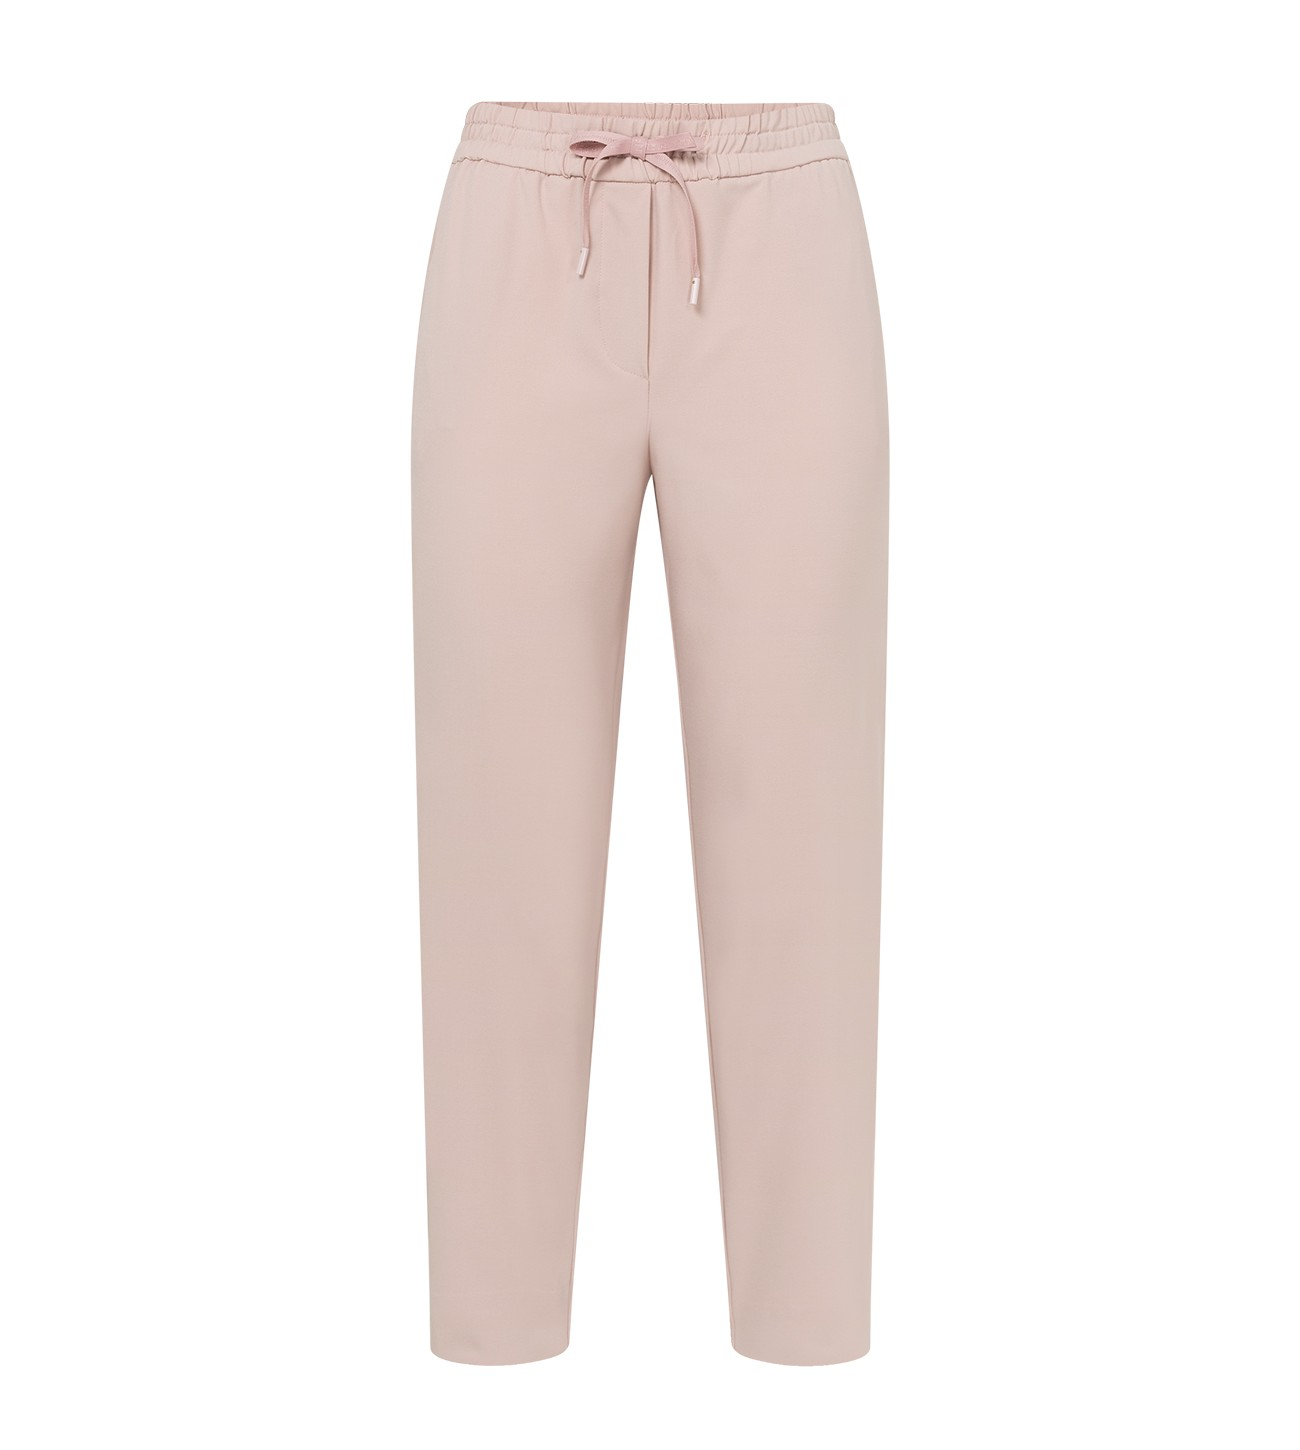 MARELLA_KNIT_JOGGING_TROUSERS_MARIONA_FASHION_CLOTHING_WOMAN_SHOP_ONLINE_31310215200